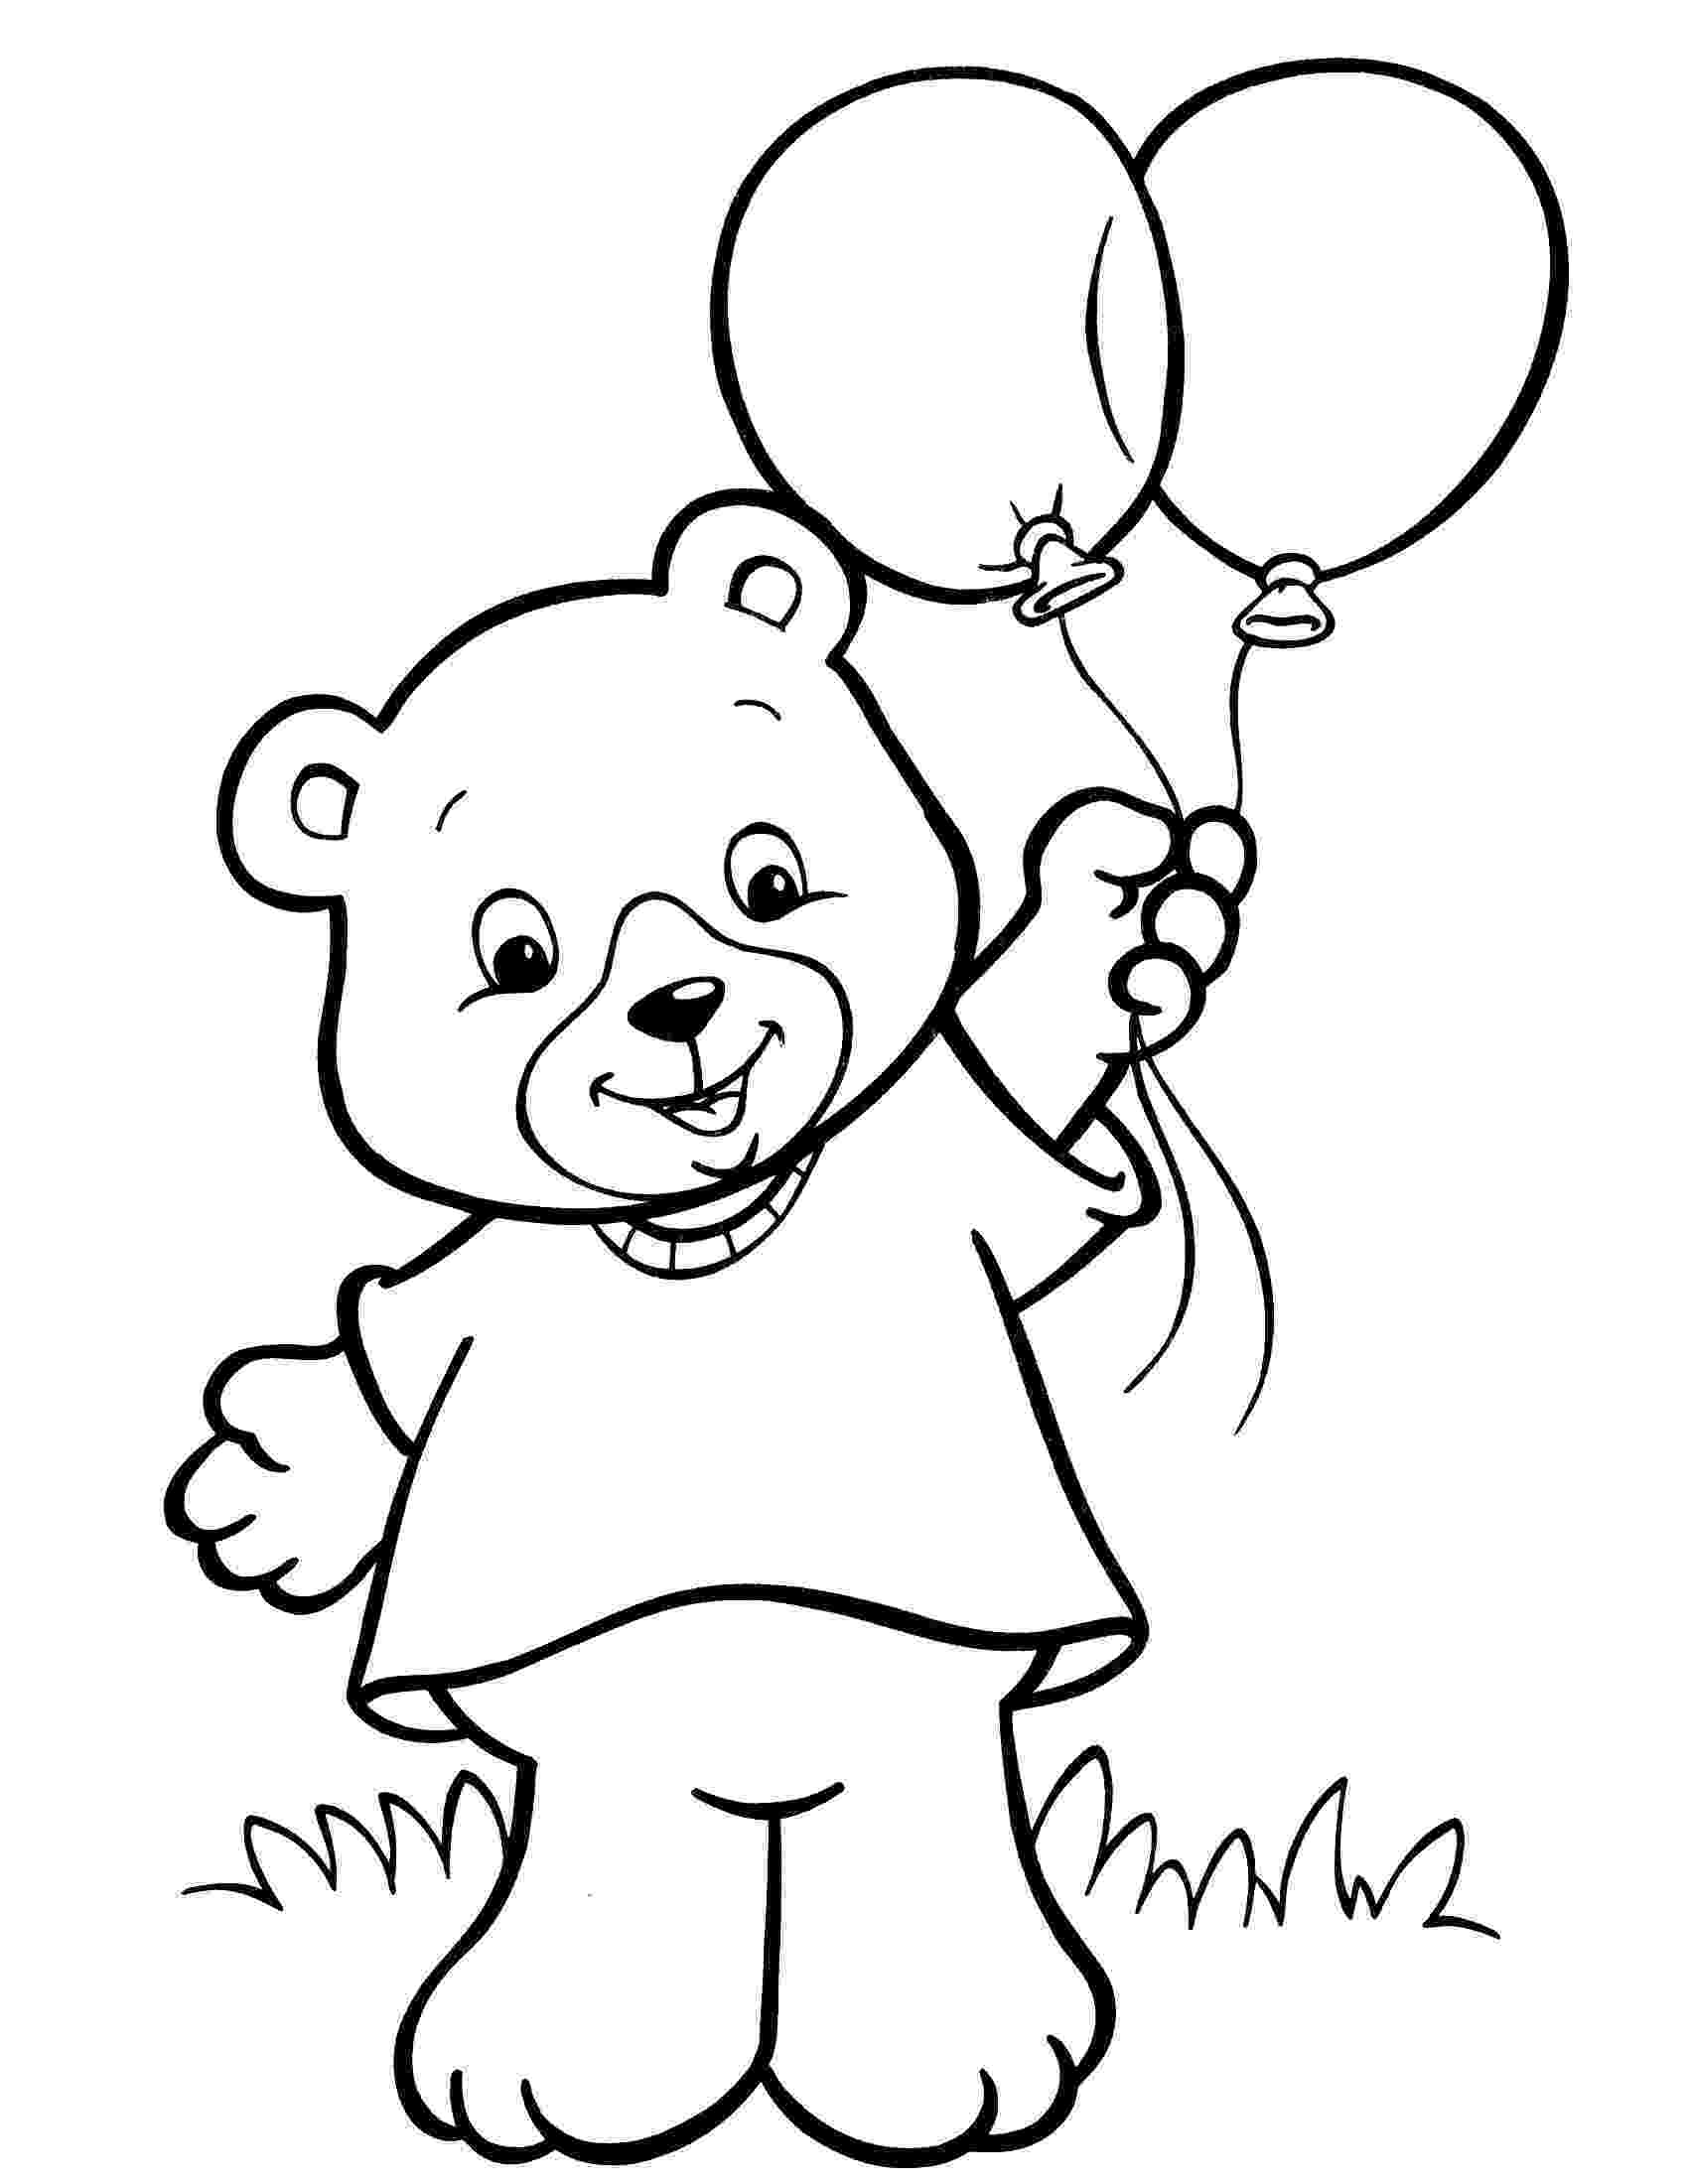 printable coloring sheets for 2 year olds coloring pages for 10 year olds printable at getcolorings printable year coloring olds for sheets 2